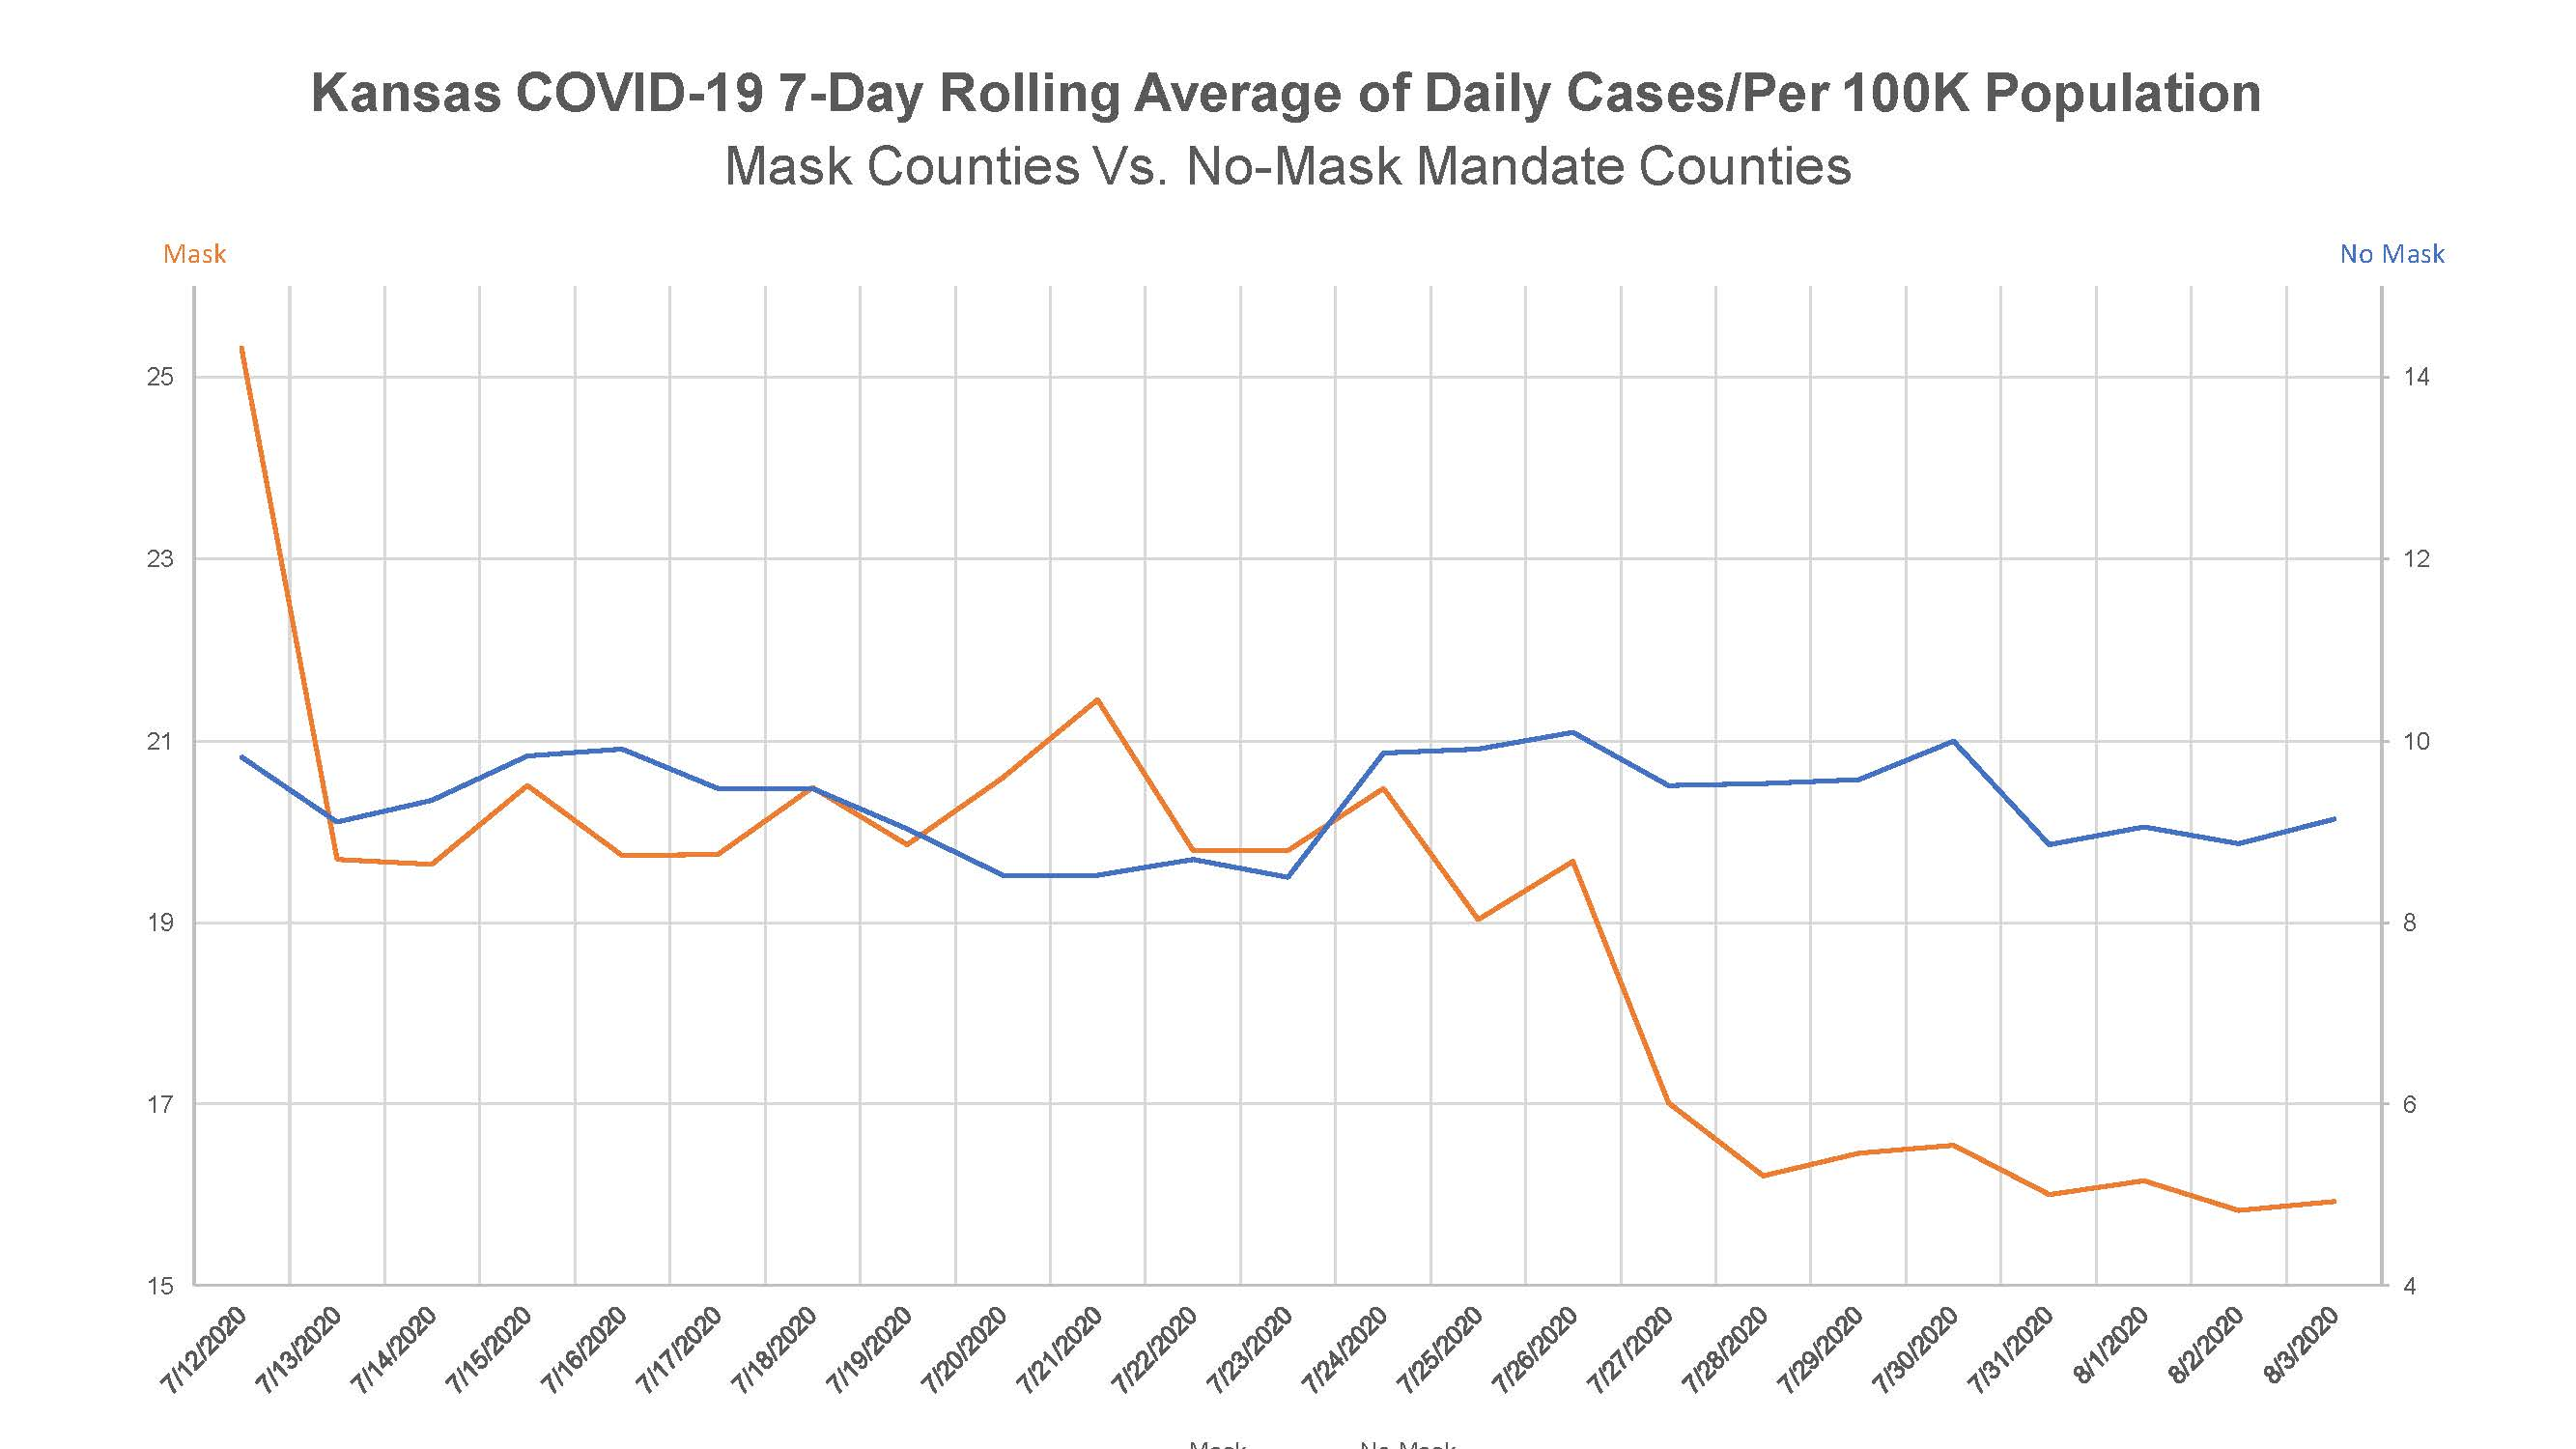 Kansas COVID-19 7-Day Rolling Average of Daily Cases Per 100K Population (002)